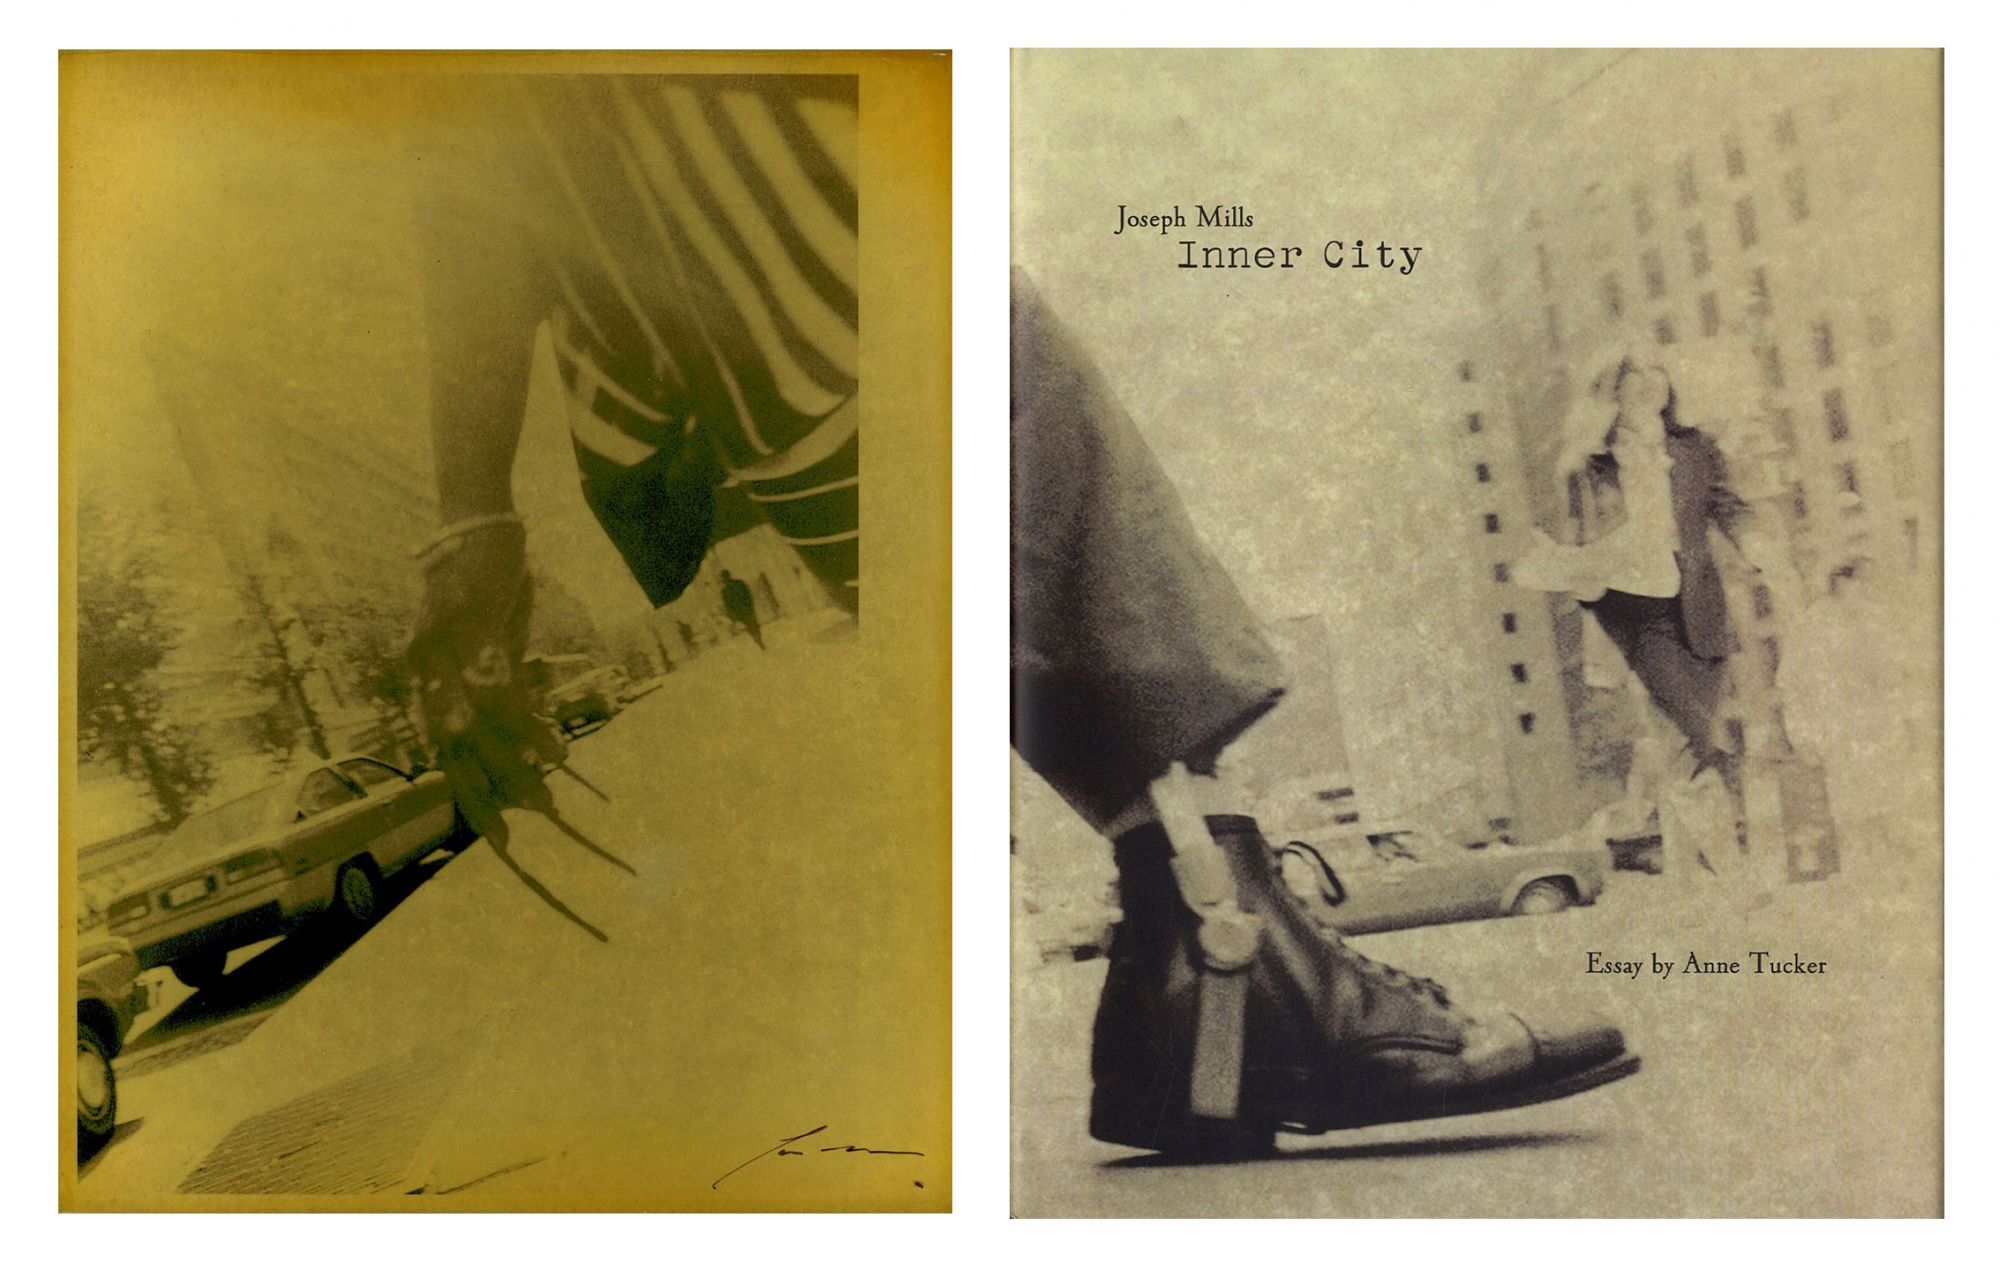 Joseph Mills: Inner City, Special Limited Edition (with Print) [SIGNED by Joe Mills and Anne Tucker]